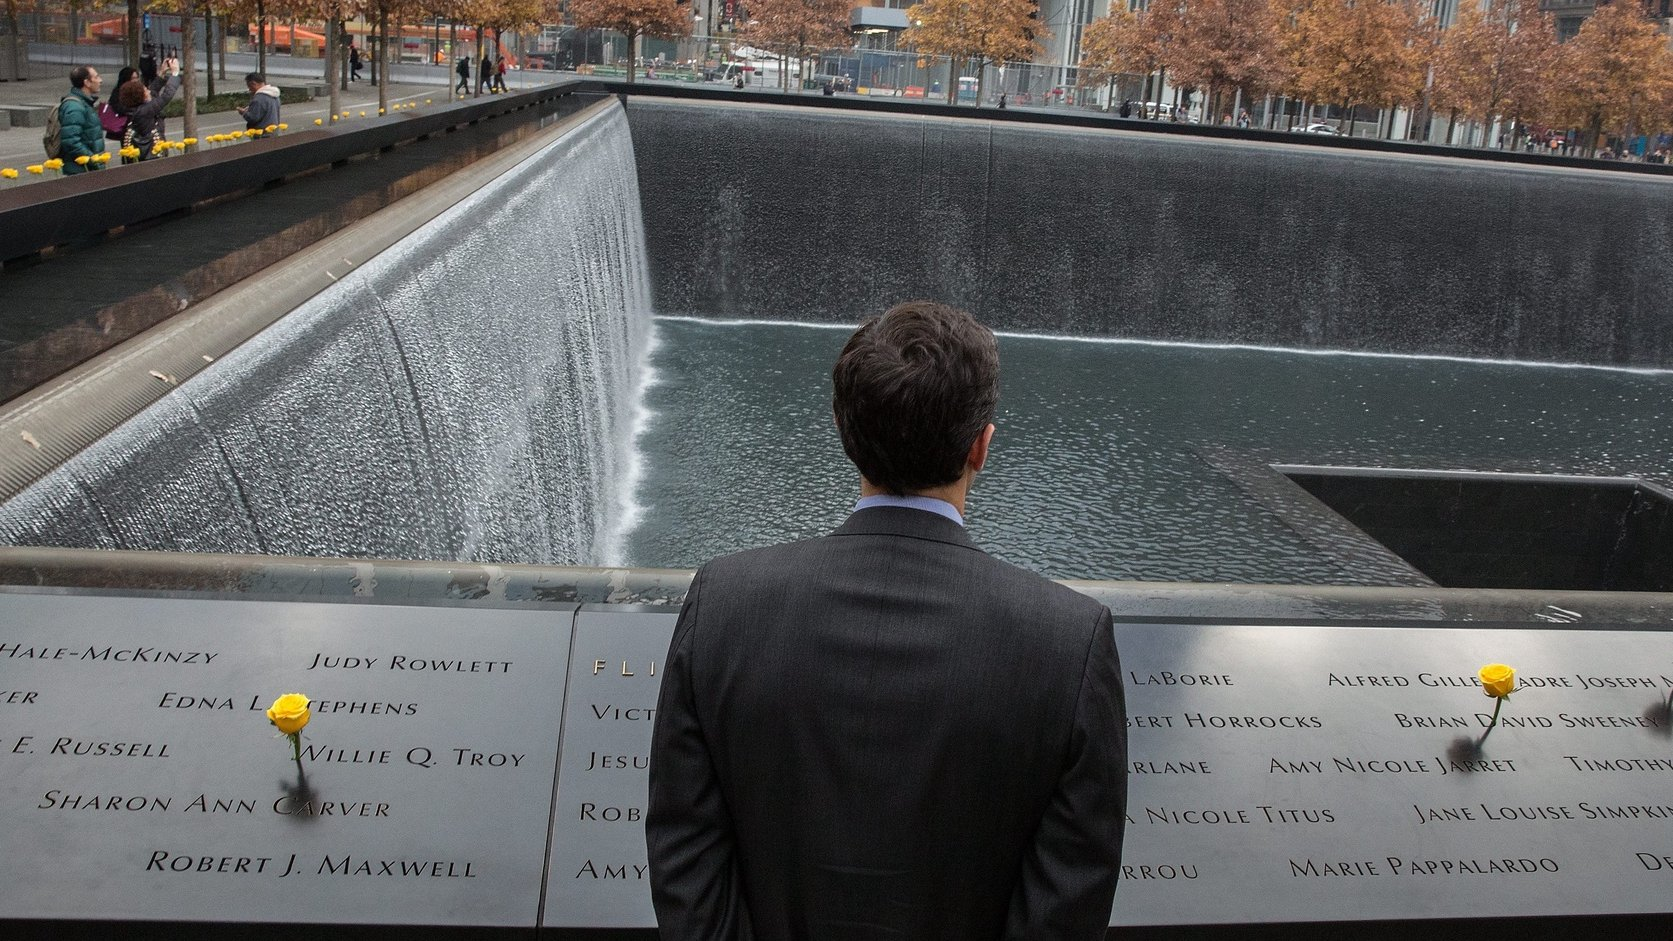 epa04485344 A passer-by pauses at the 9/11 Memorial where flowers are displayed in remembrance of Veterans Day in New York, New York, USA, 11 November 2014. Veterans Day, conciding with Armistice Day and Remembrance Day in other countries, honors those who have served in the US Armed Forces.  EPA/ANDREW GOMBERT